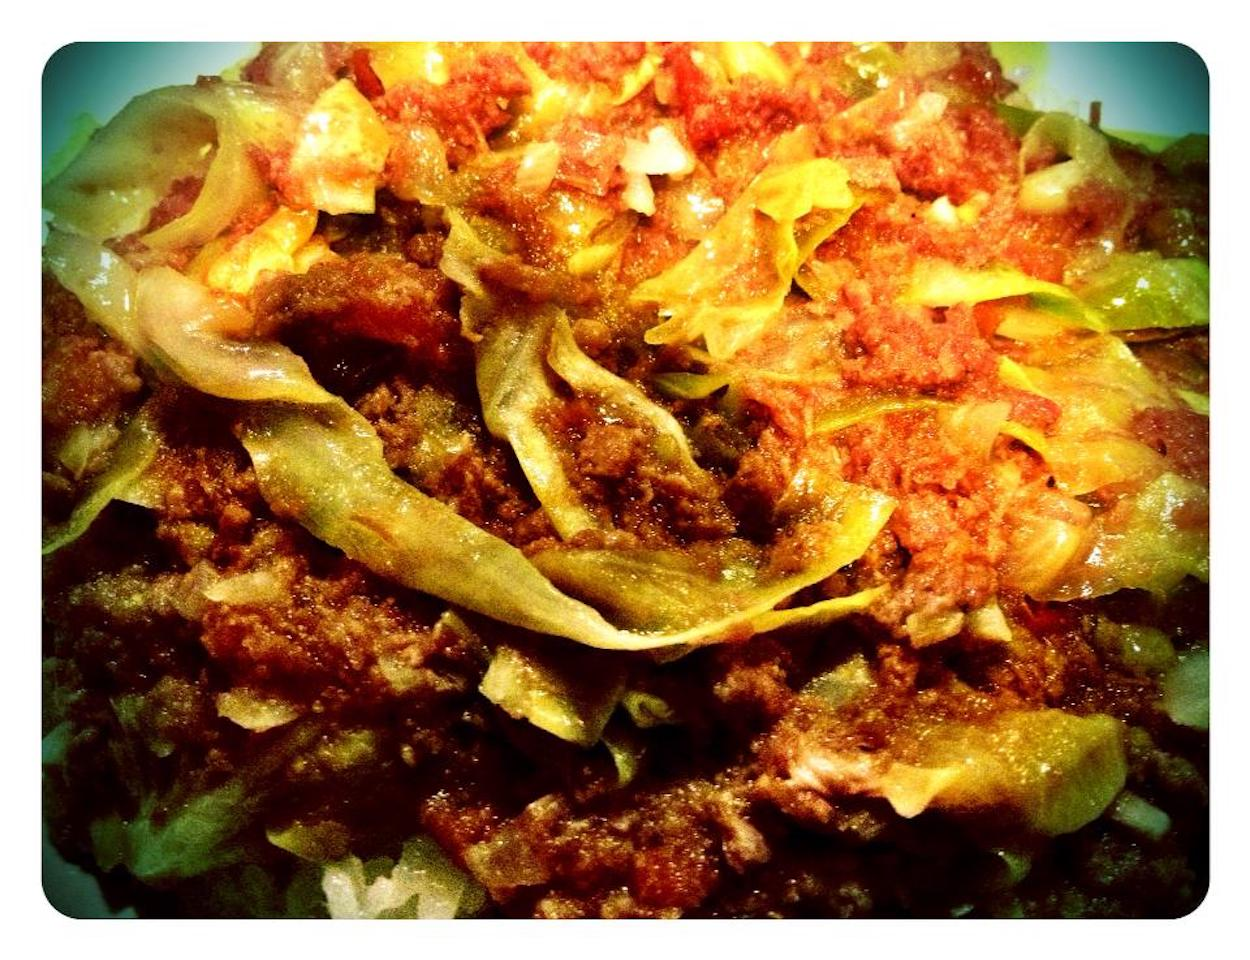 Filipino Corned Beef and Cabbage